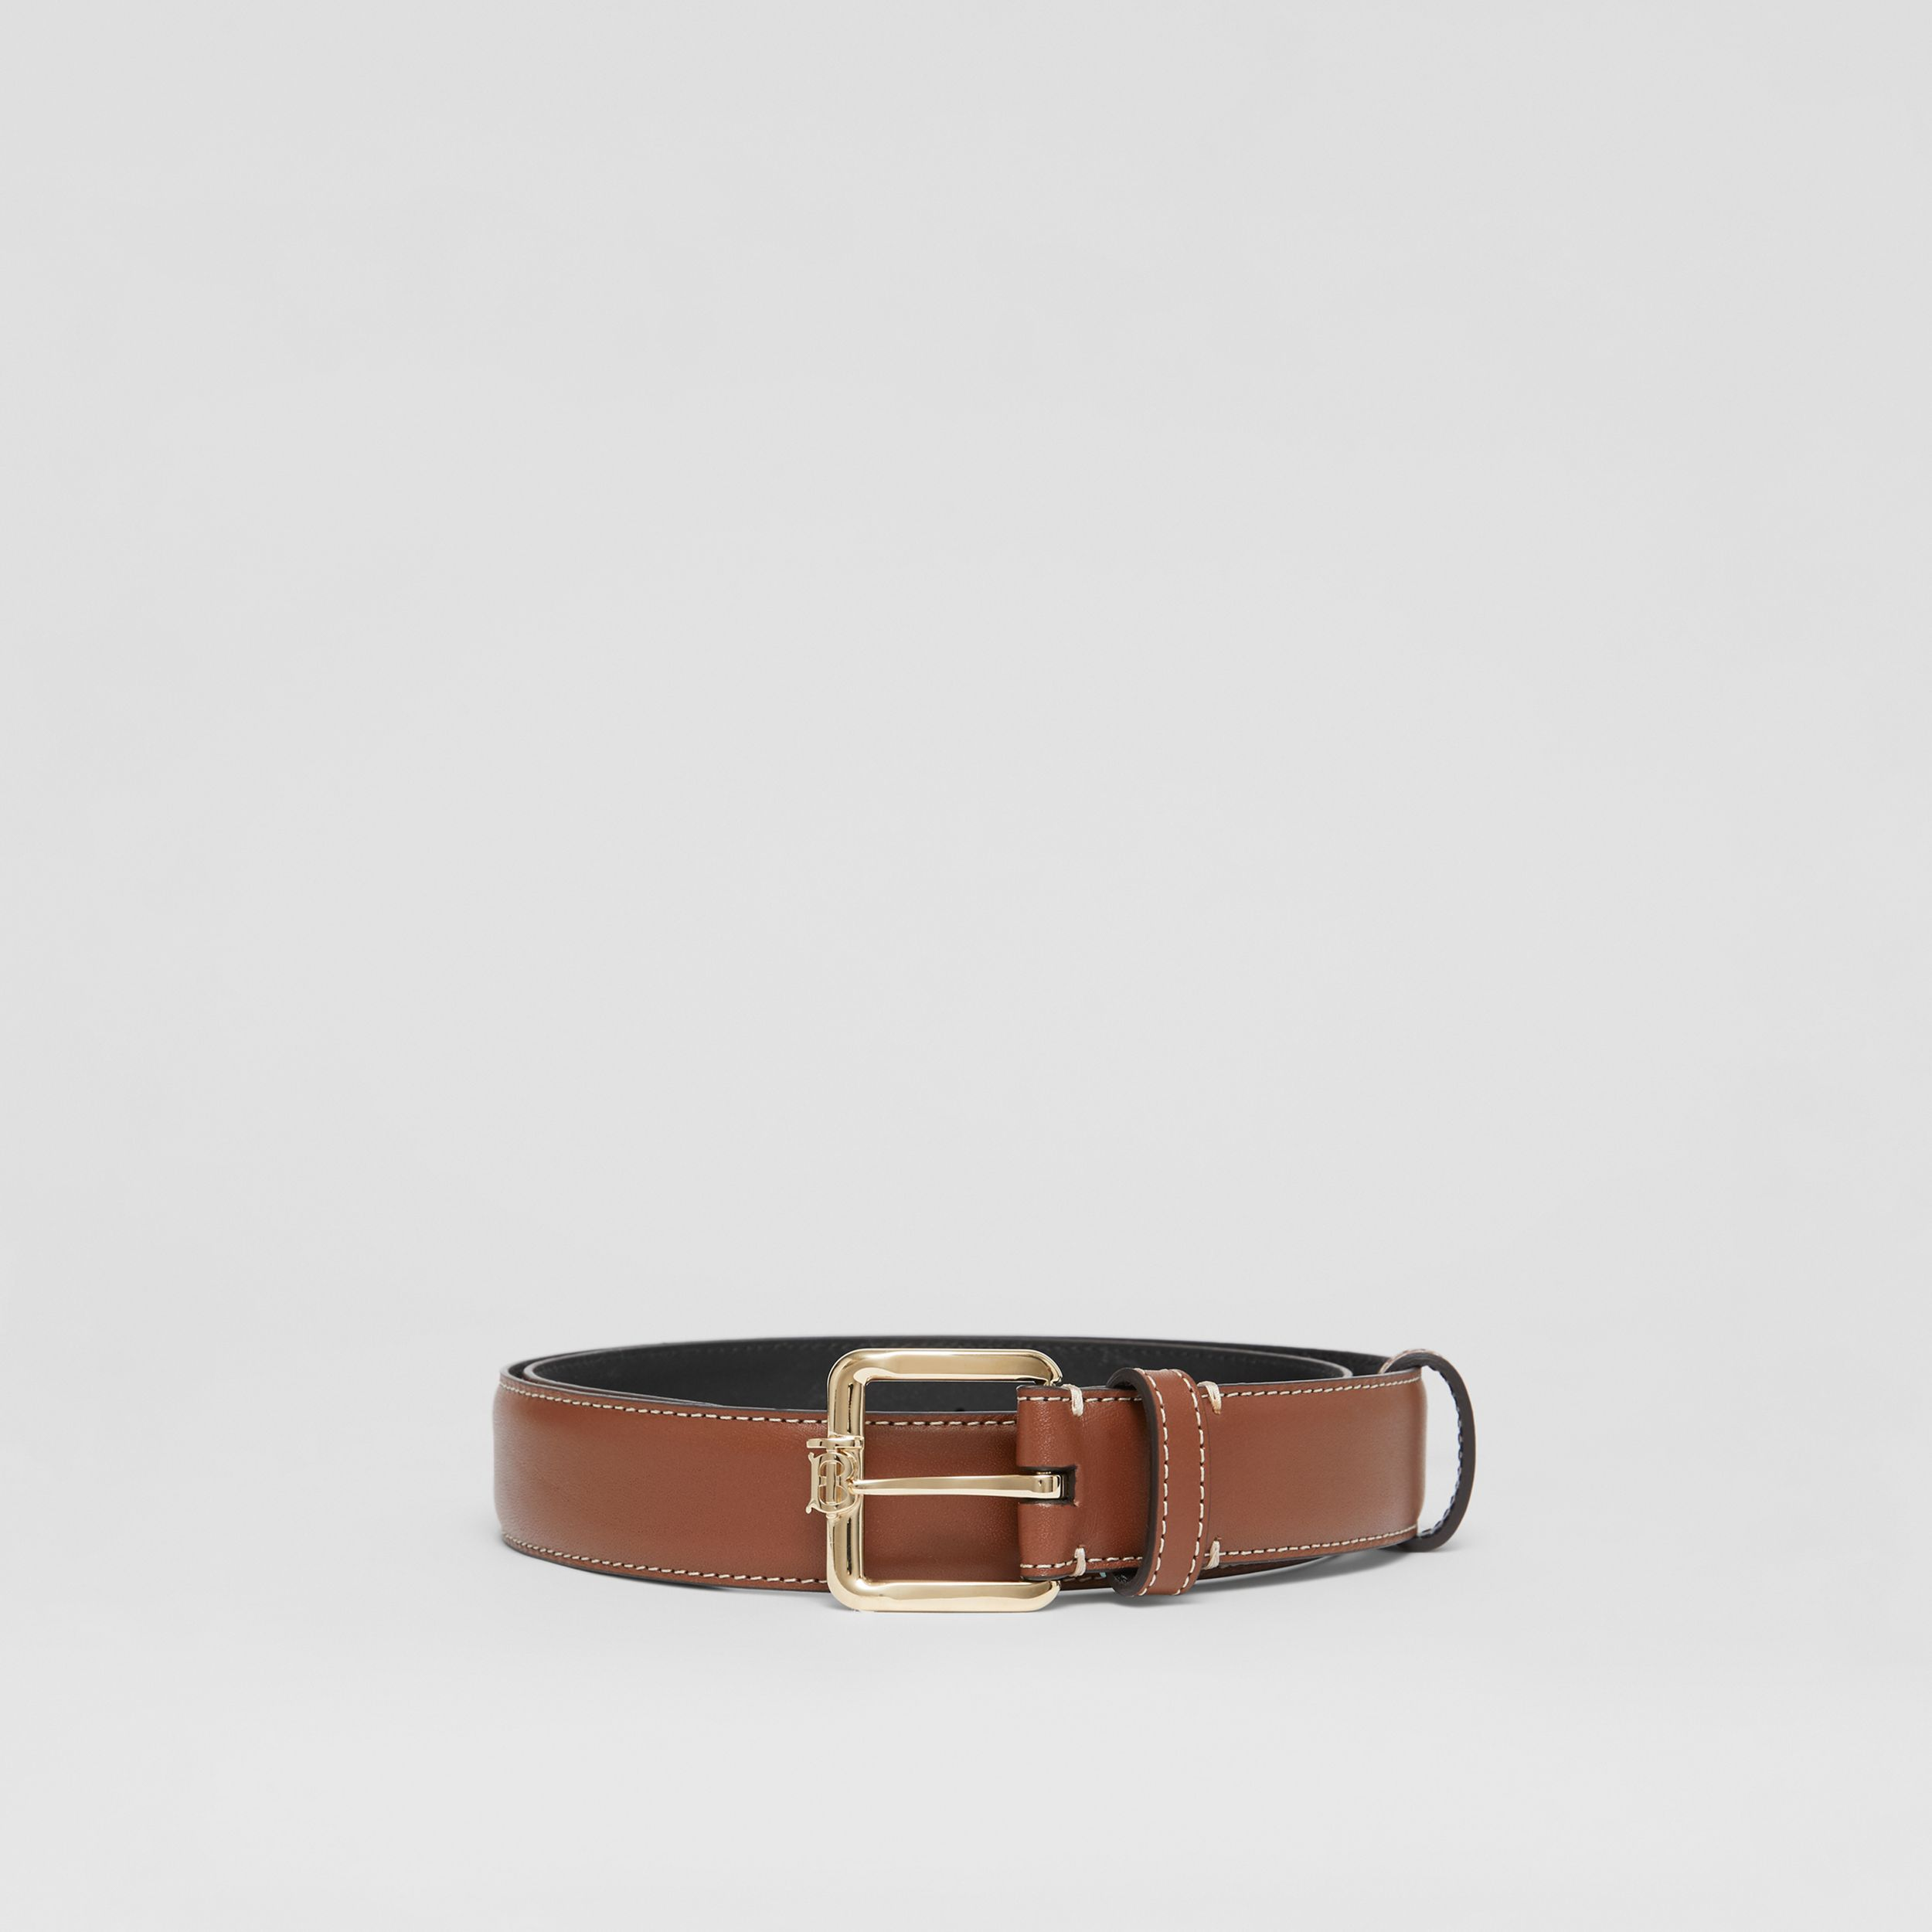 Monogram Motif Topstitched Leather Belt in Tan/light Gold - Women | Burberry - 4